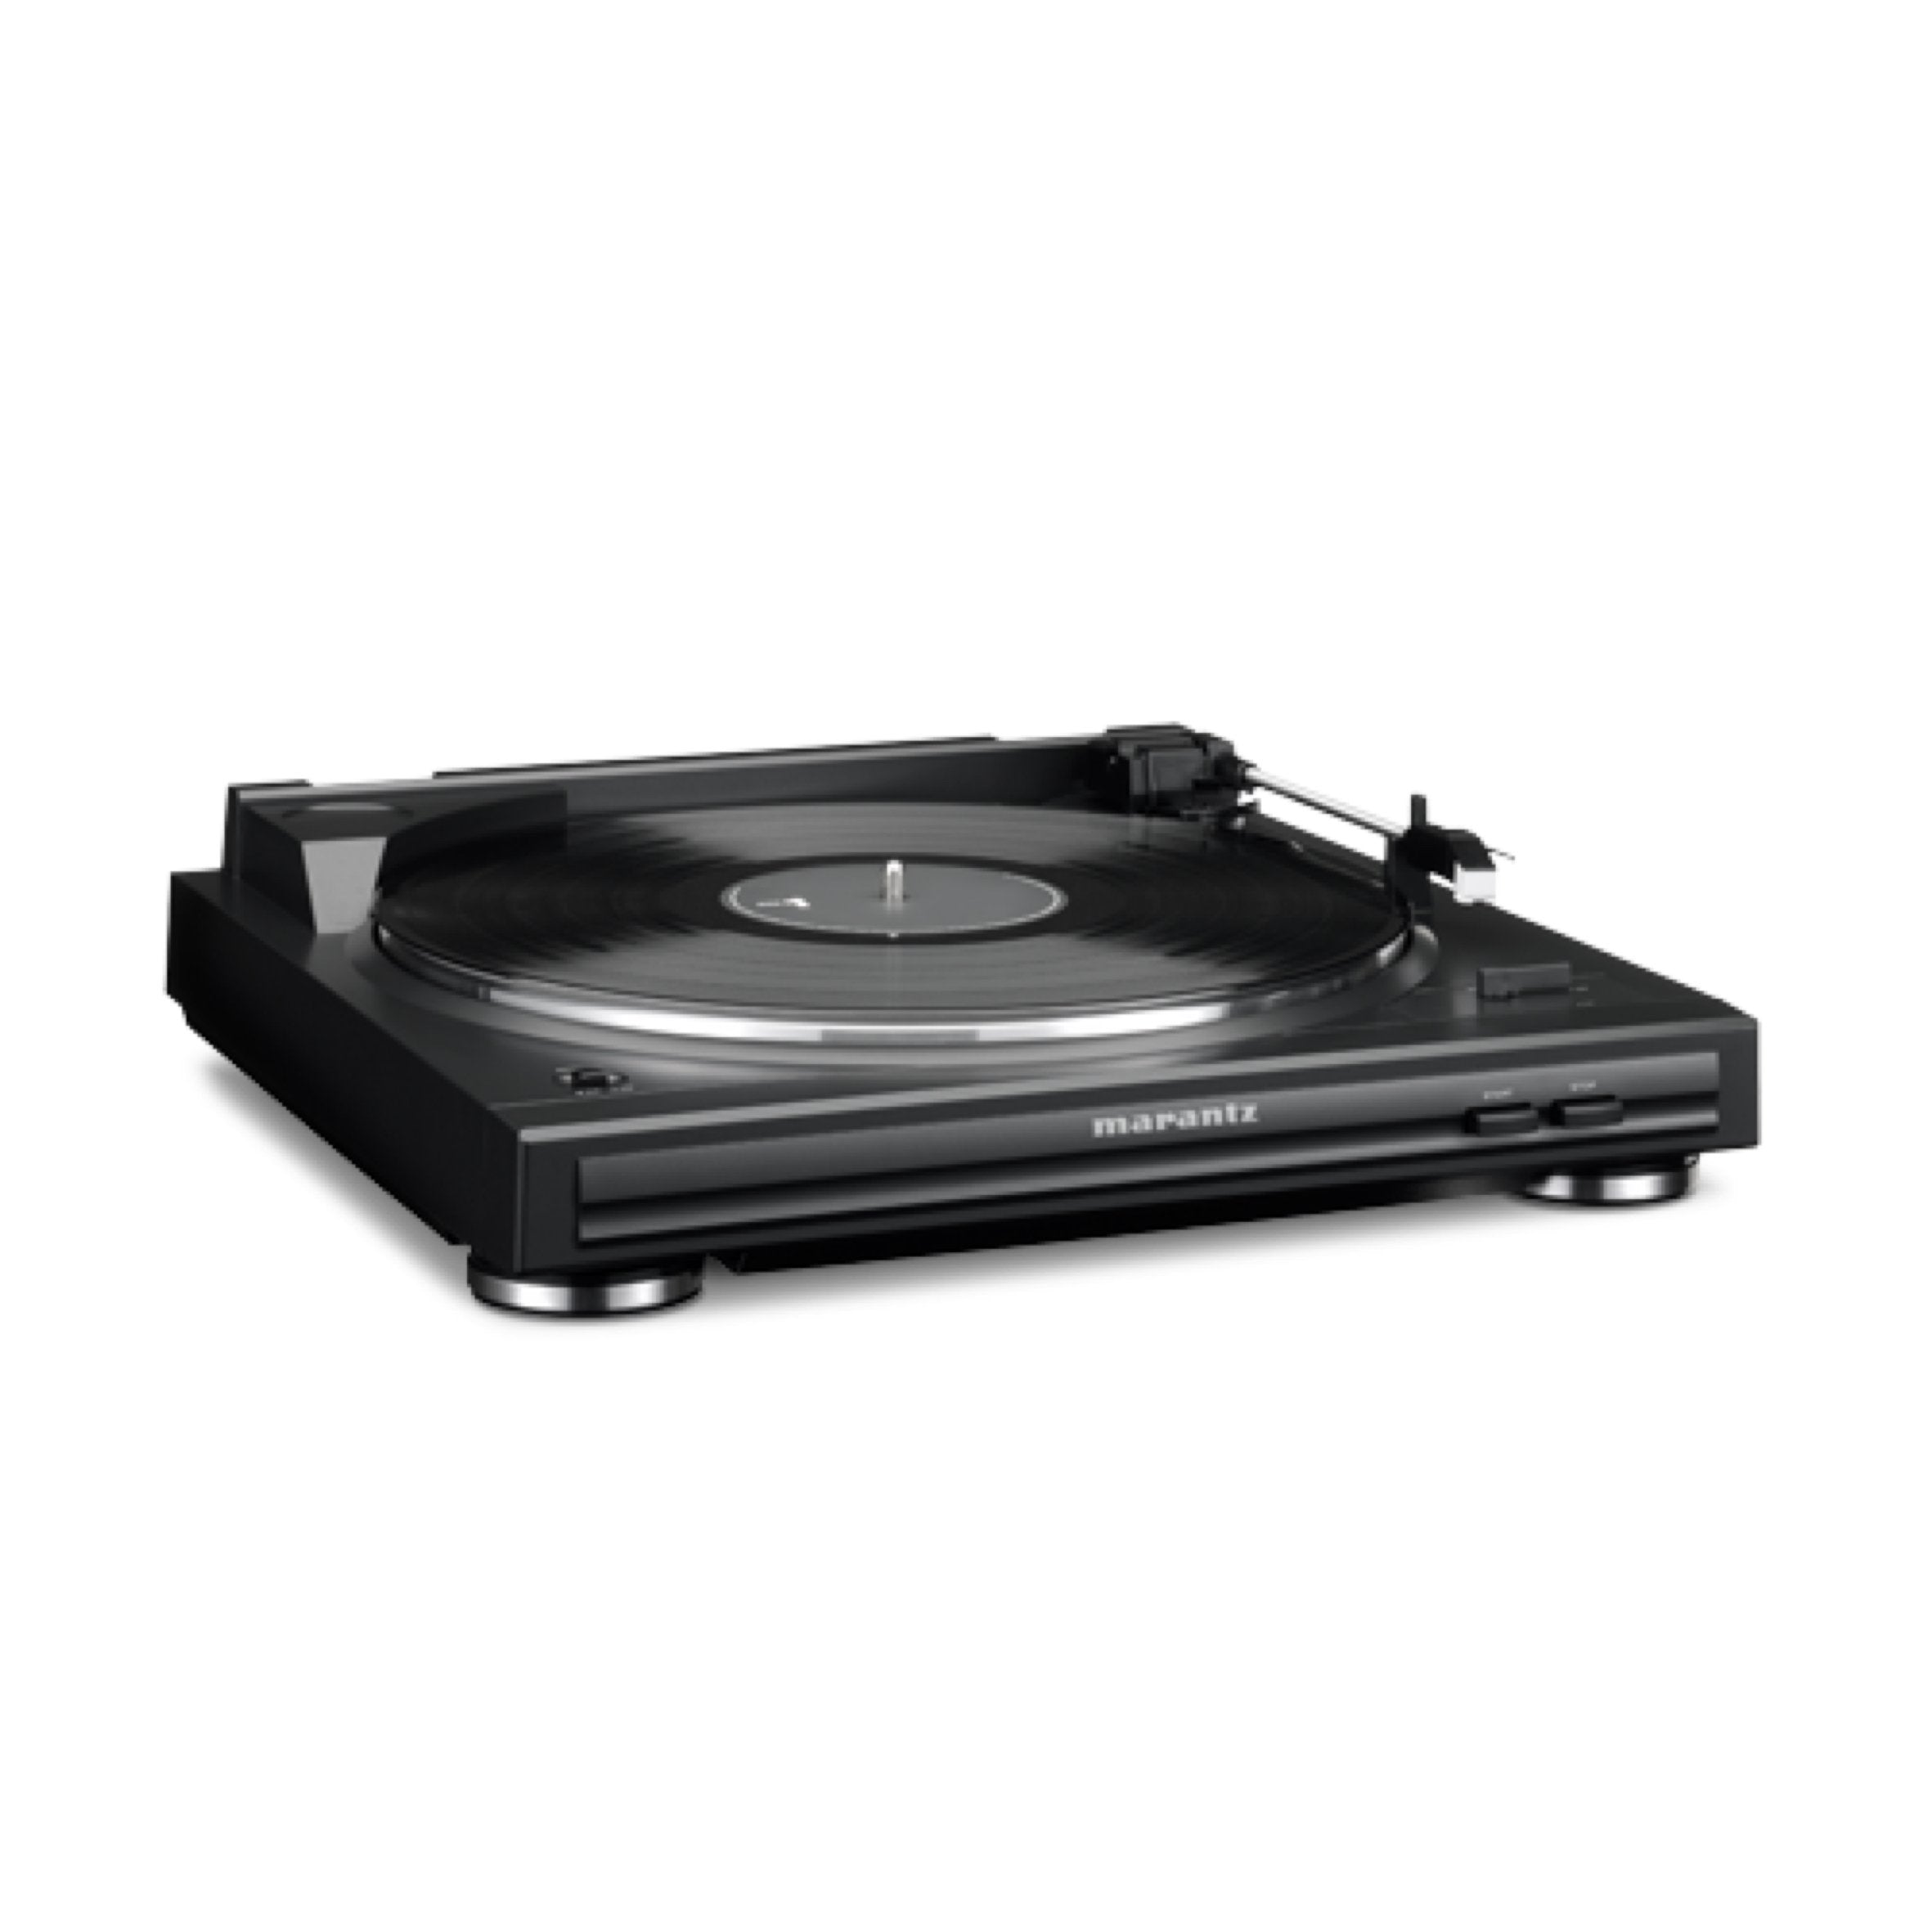 Marantz TT 5005 - Turntable, Marantz, Turntable - Auratech LLC